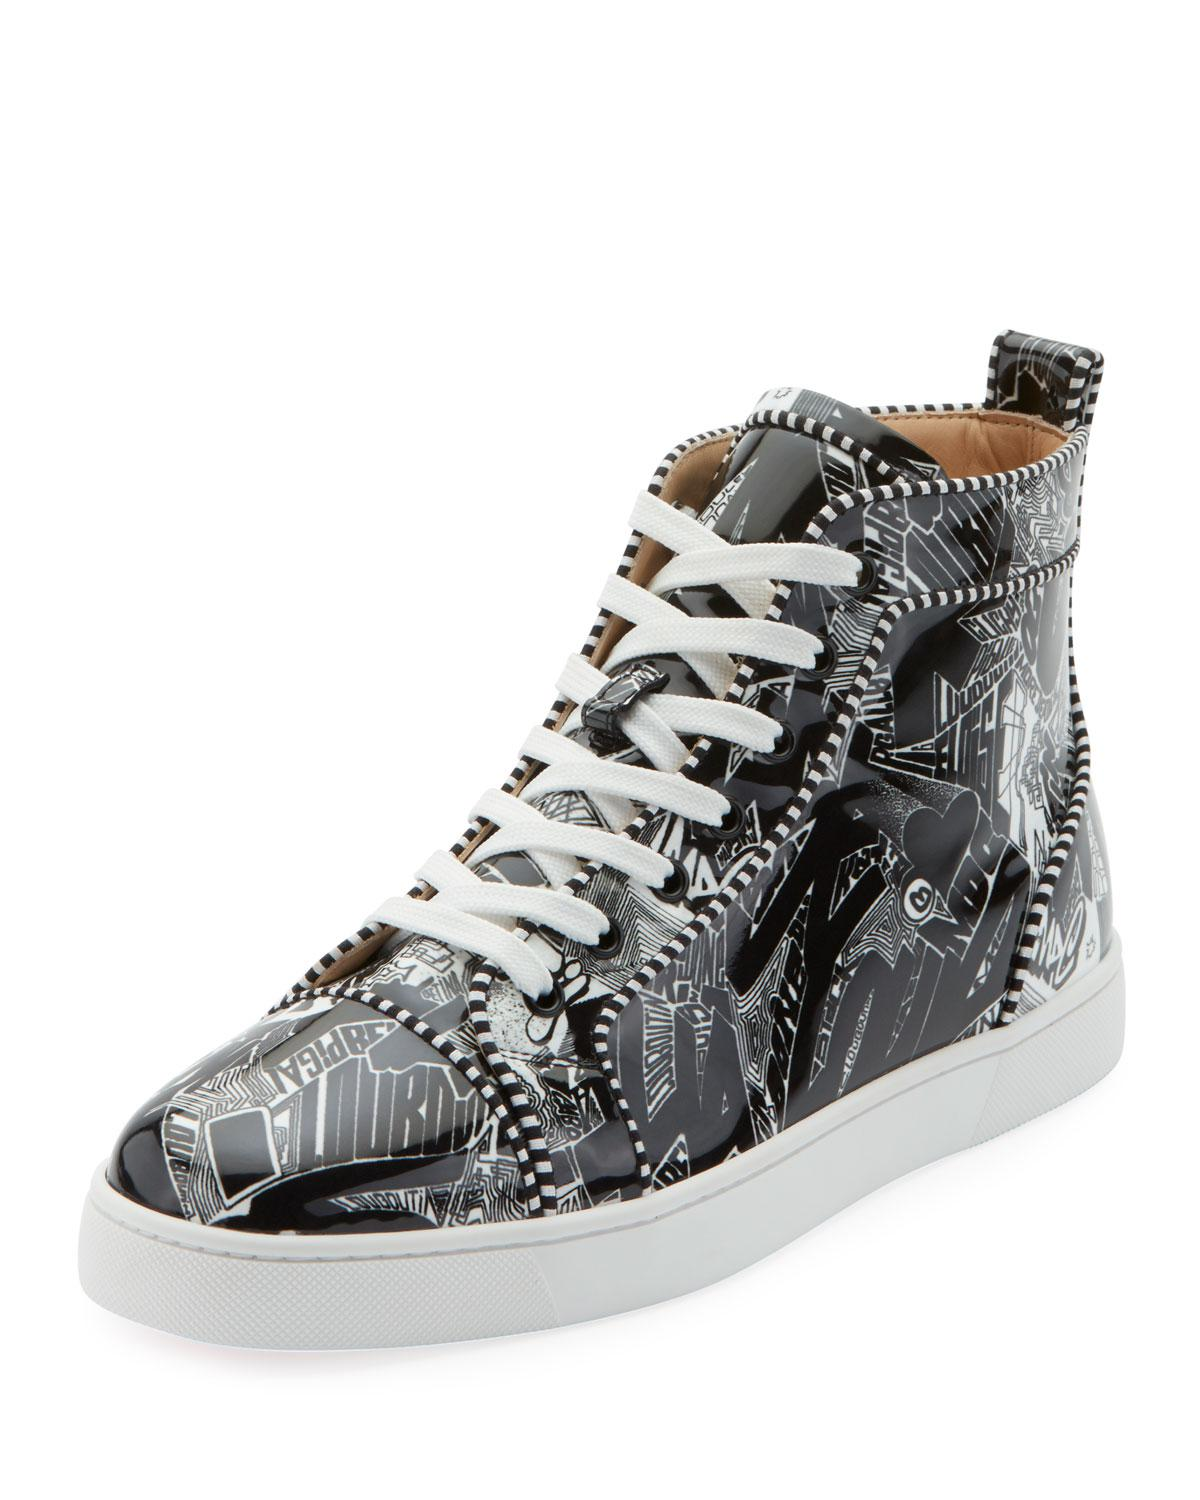 reputable site f3d3b c334e Christian Louboutin Black Men's Louis Orlato Graffiti High-top Sneakers for  men